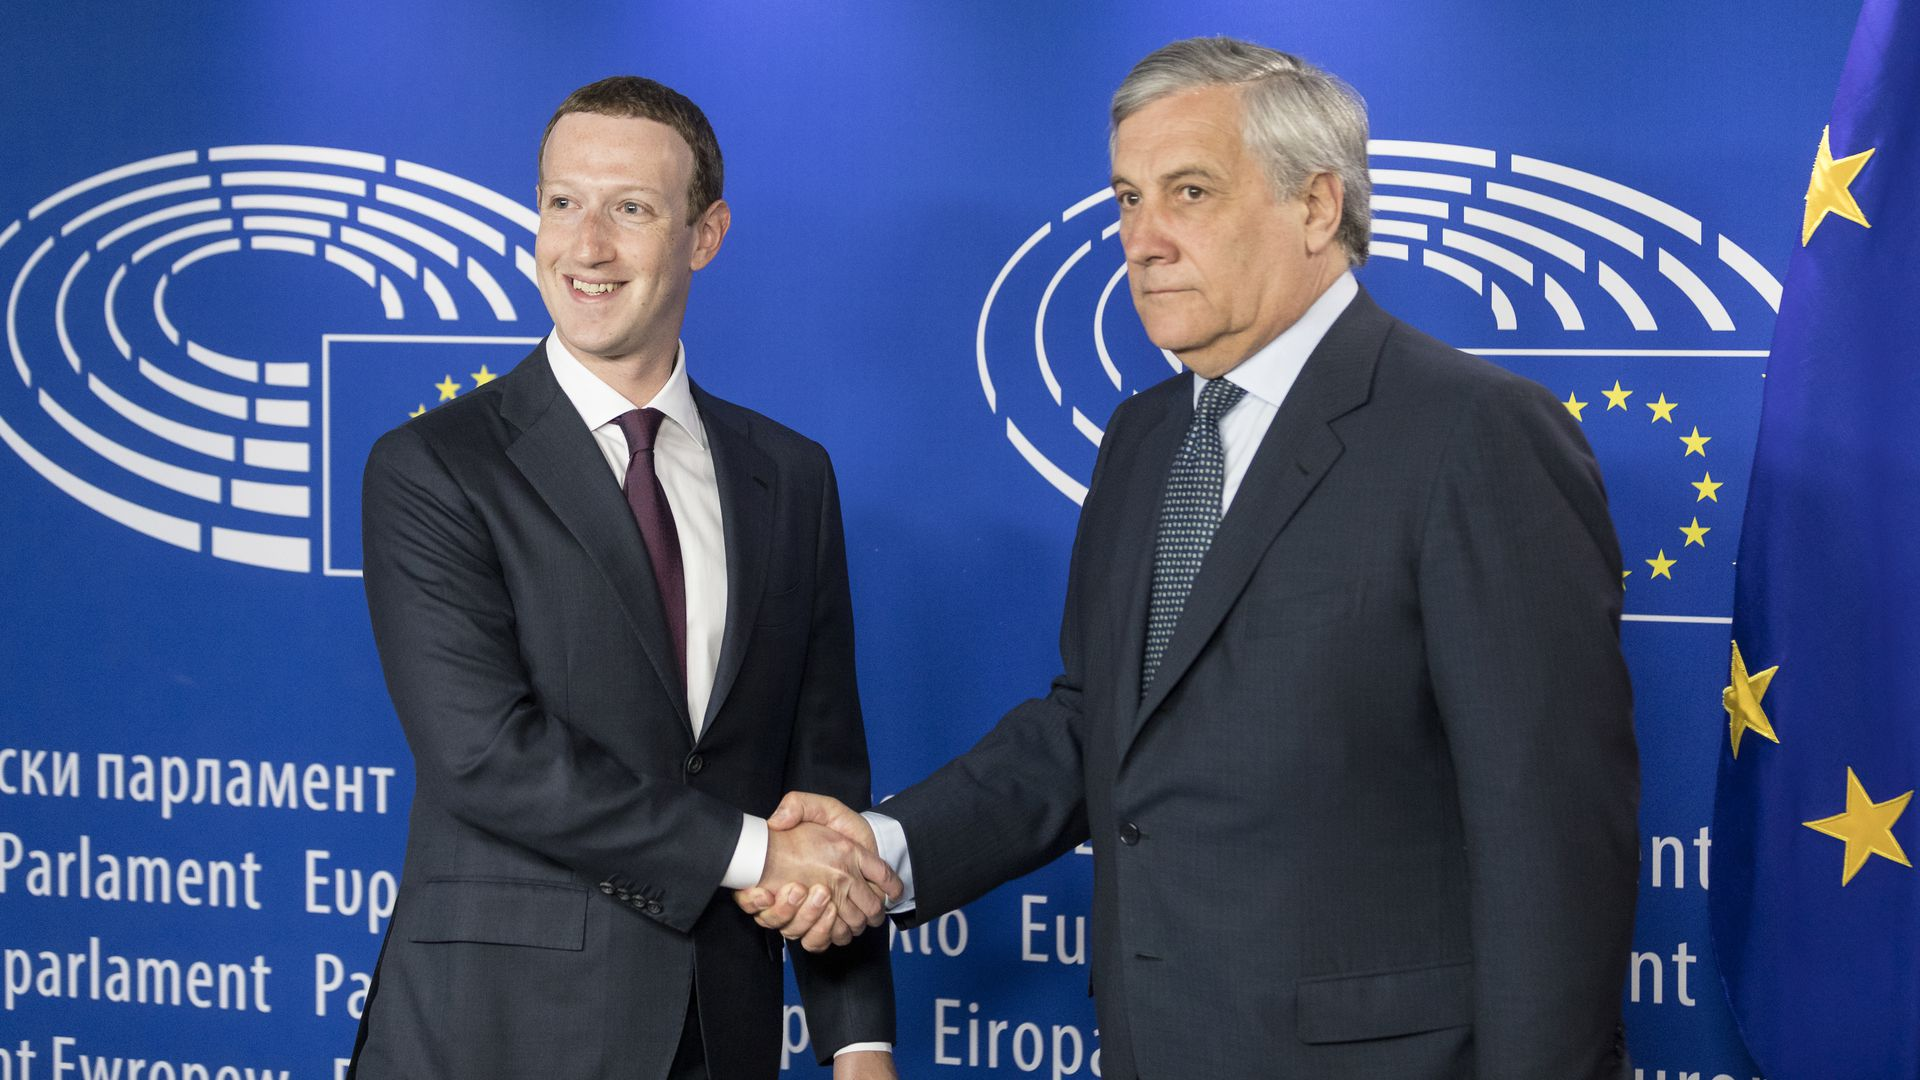 Mark Zuckerberg, smiling, shakes the hand of an unsmiling lawmaker in the EU